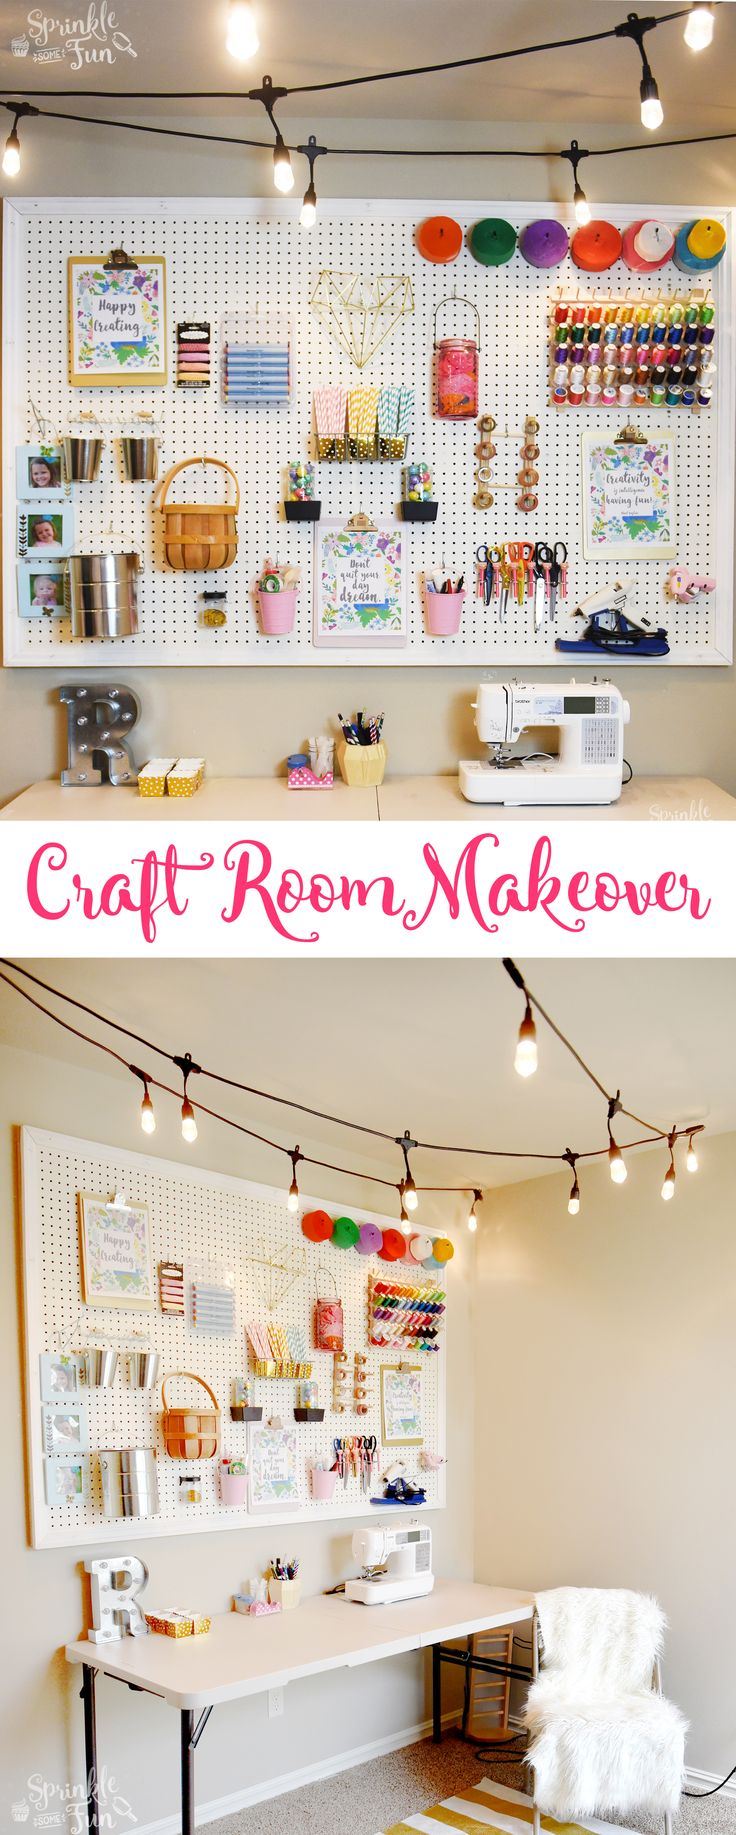 Craft Room Makeover With Café Lights! #ad #EnbrightenLife @JascoProducts Part 59